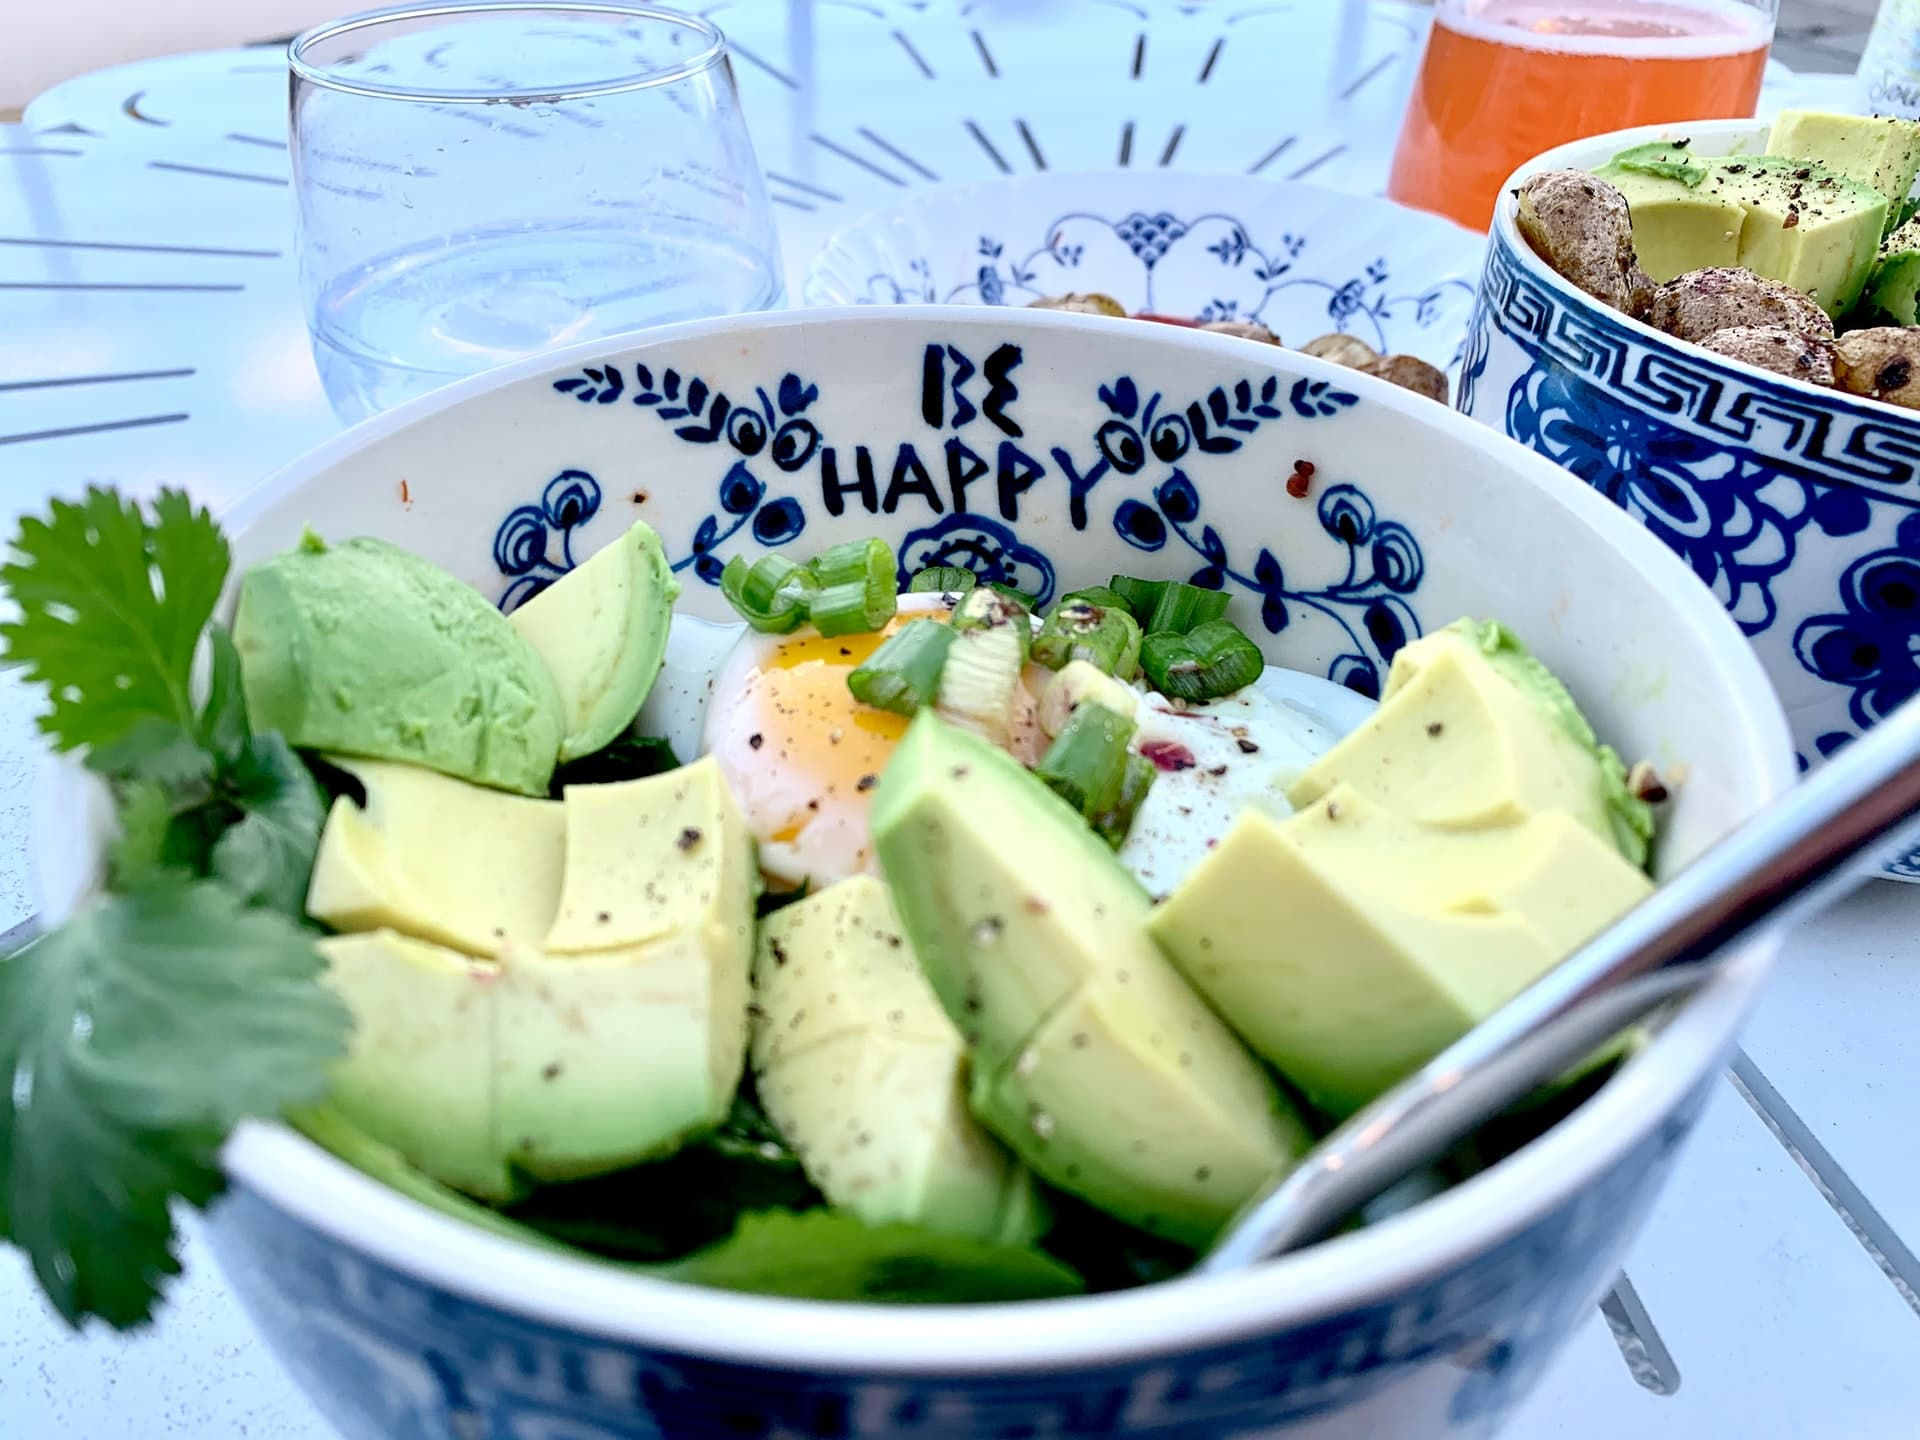 are avocado and chocolate good for fighting stress?